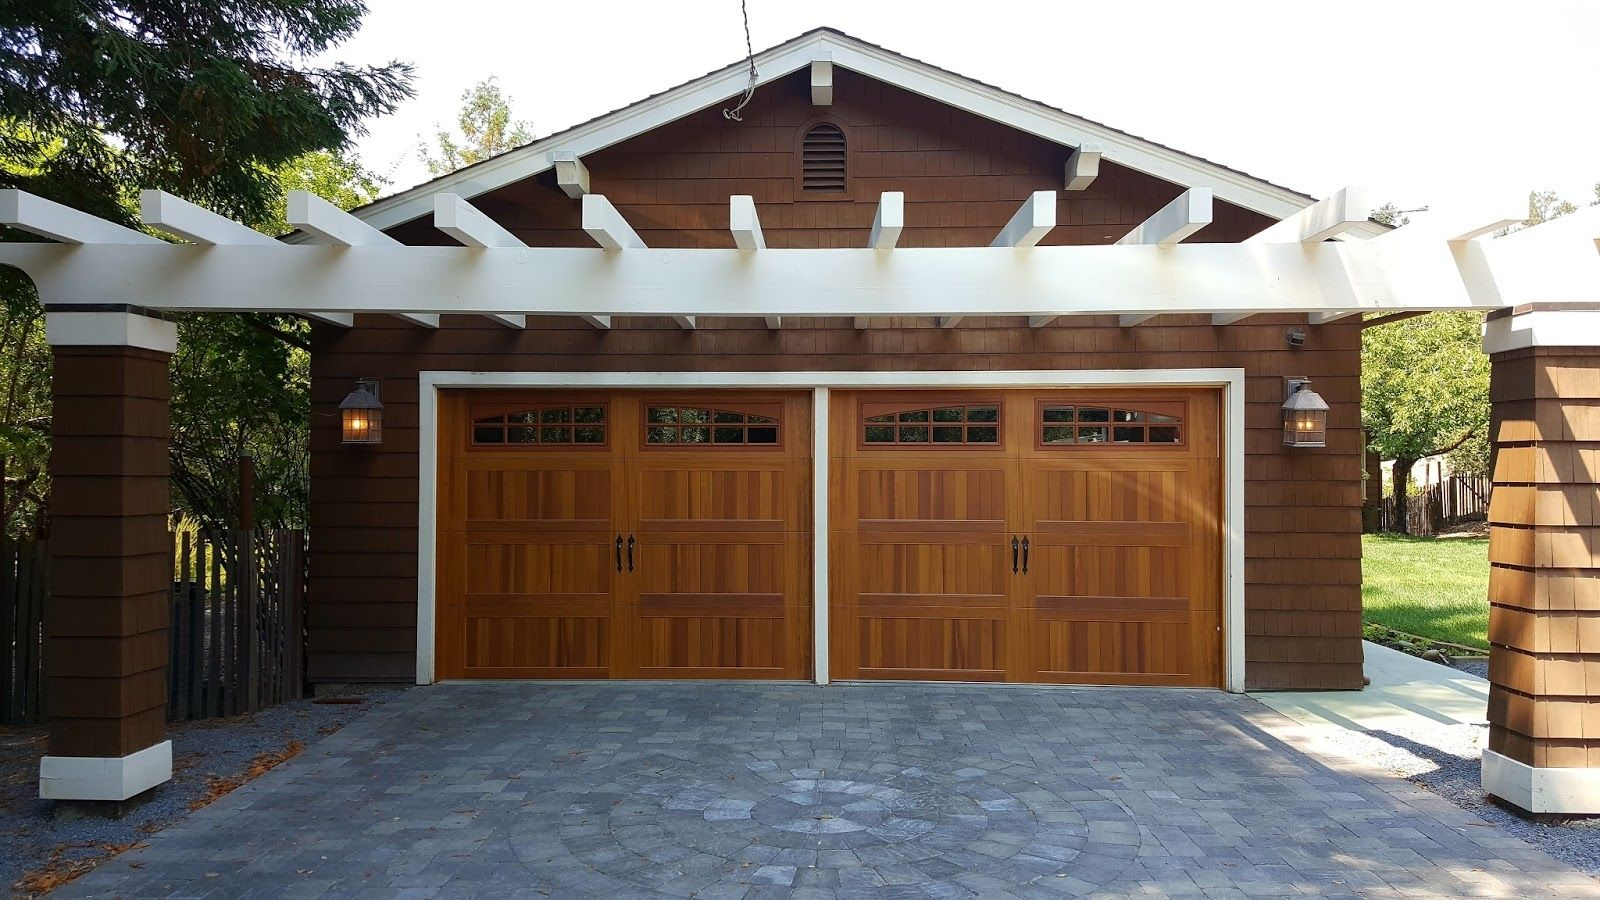 service overhead repair doors in replacement nc residential installation weather hanson raleigh door garage seal and affordable